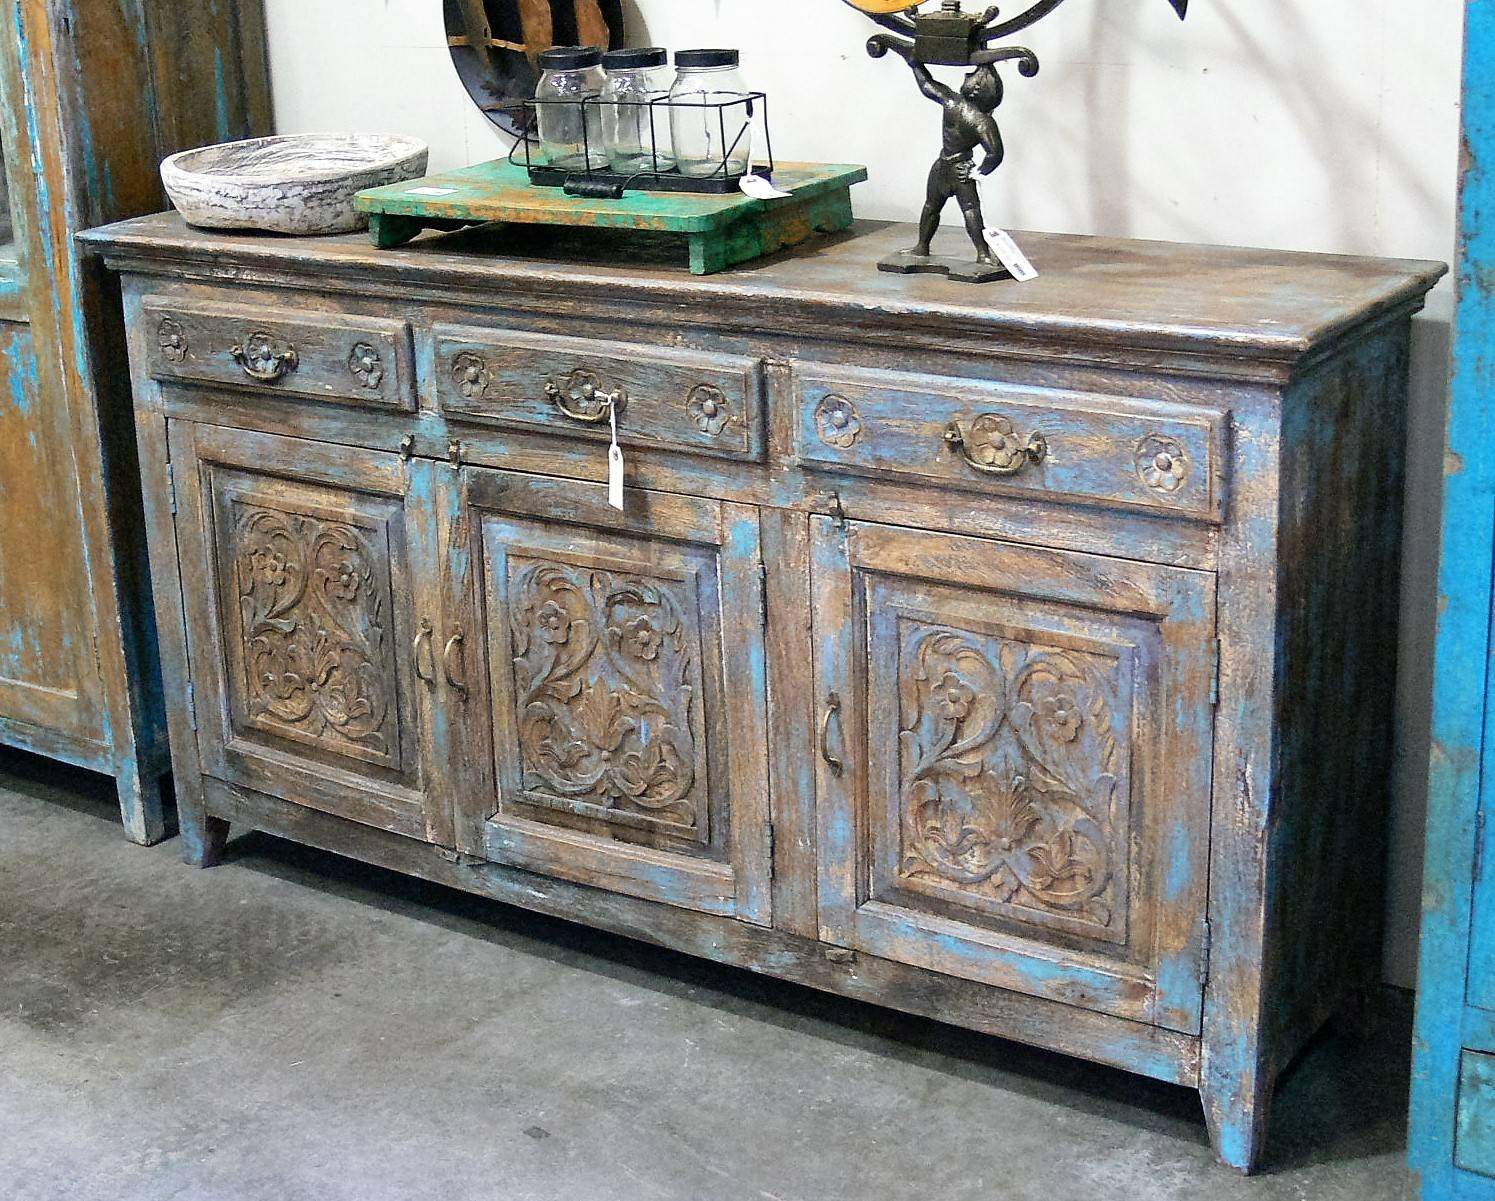 Sideboards & Buffets » Market Imports – Home, Patio, Antiques Within Most Up To Date Sideboards And Buffets (#11 of 15)